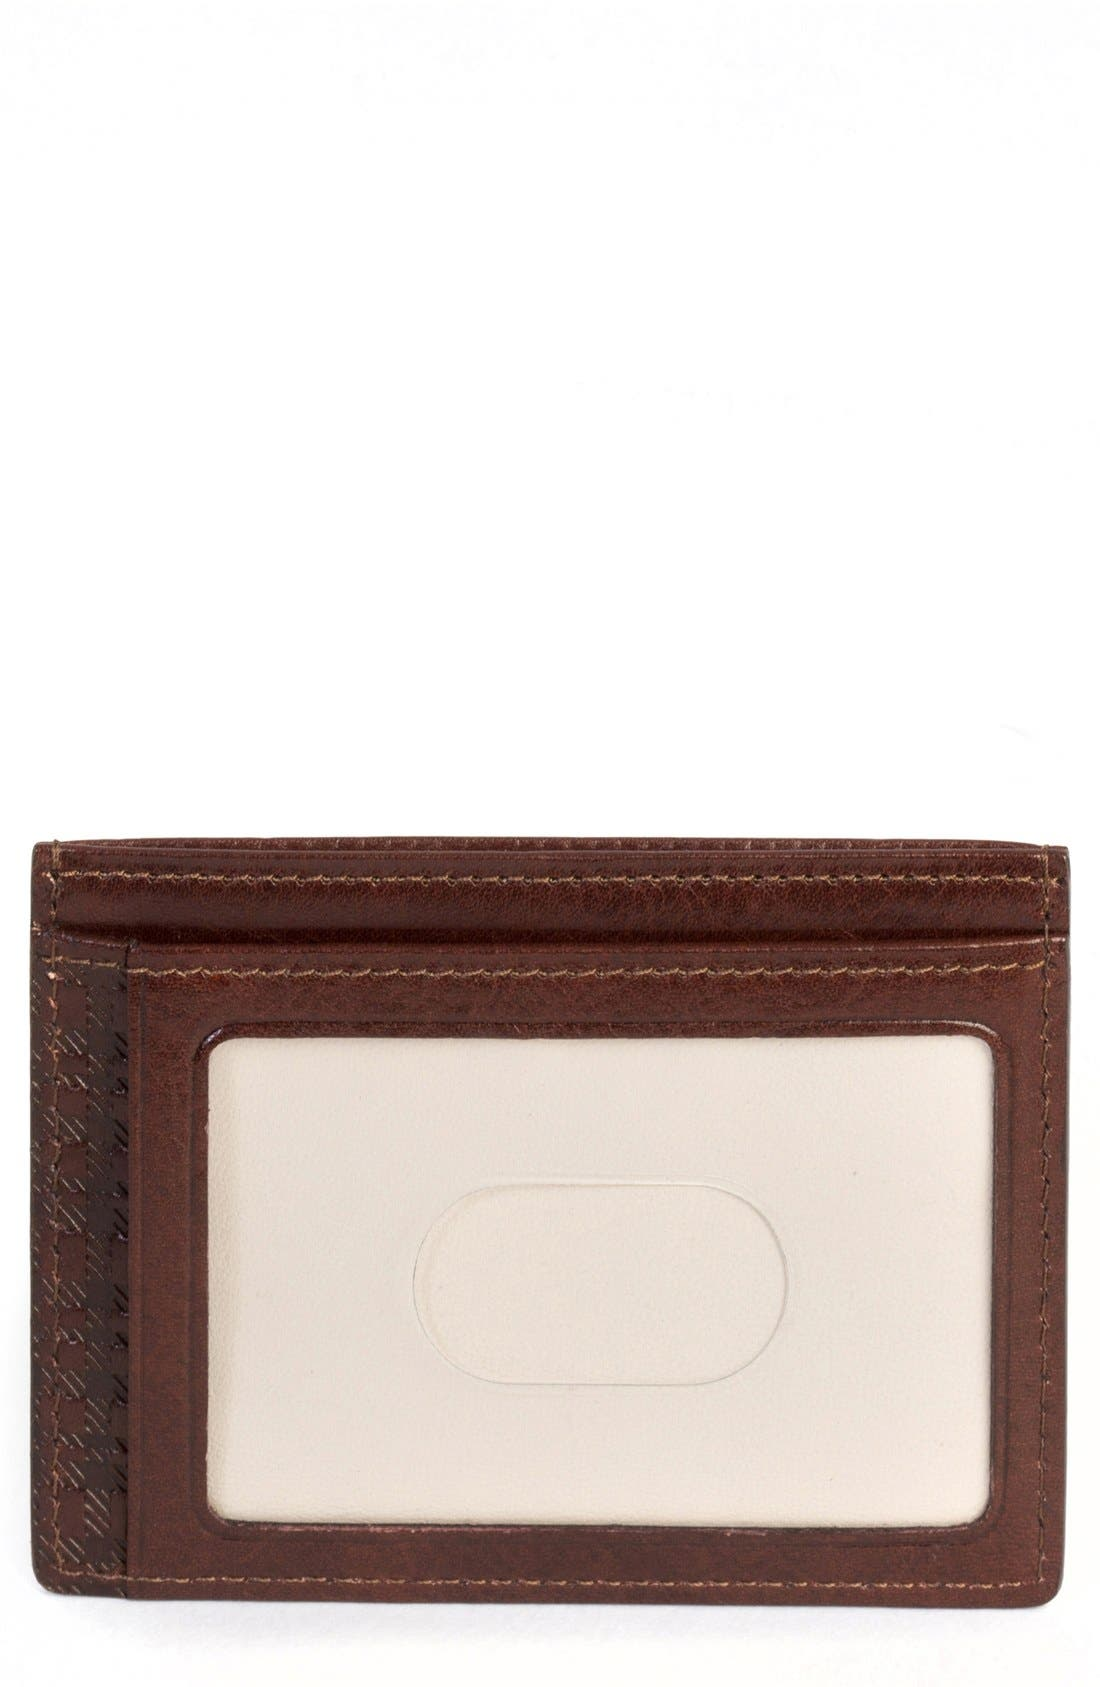 'Becker' Leather Card Case,                             Main thumbnail 1, color,                             Whiskey